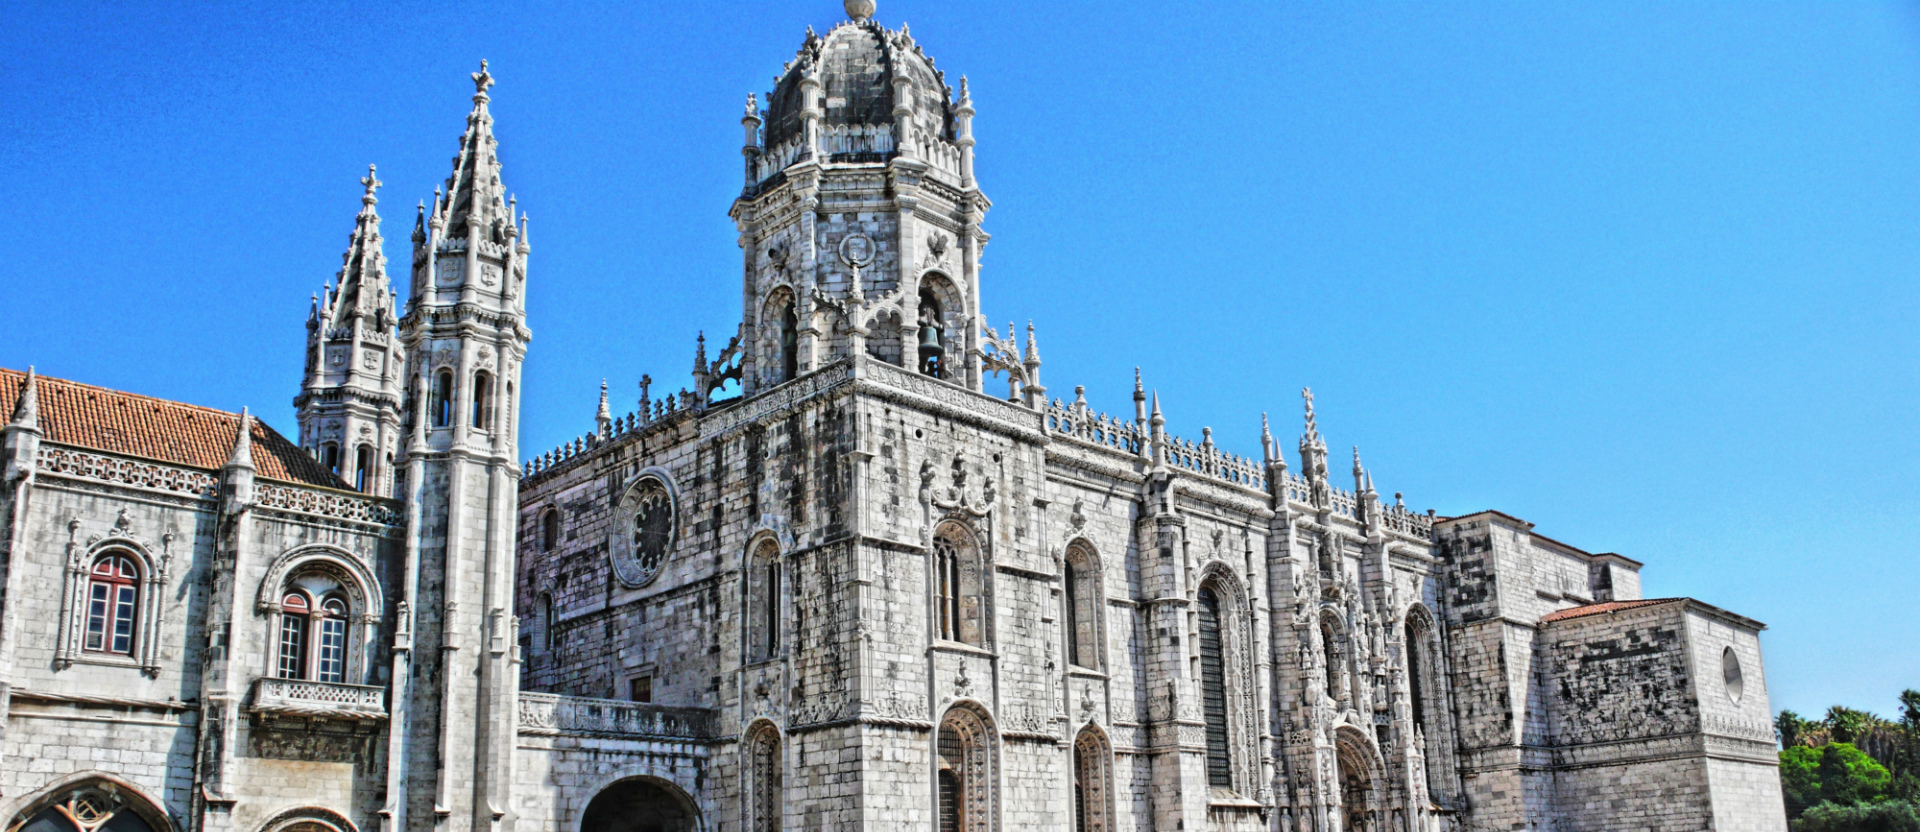 Belém what to do in lisbon What To Do In Lisbon: 48 Hours In The Capital Carrocel 2 54